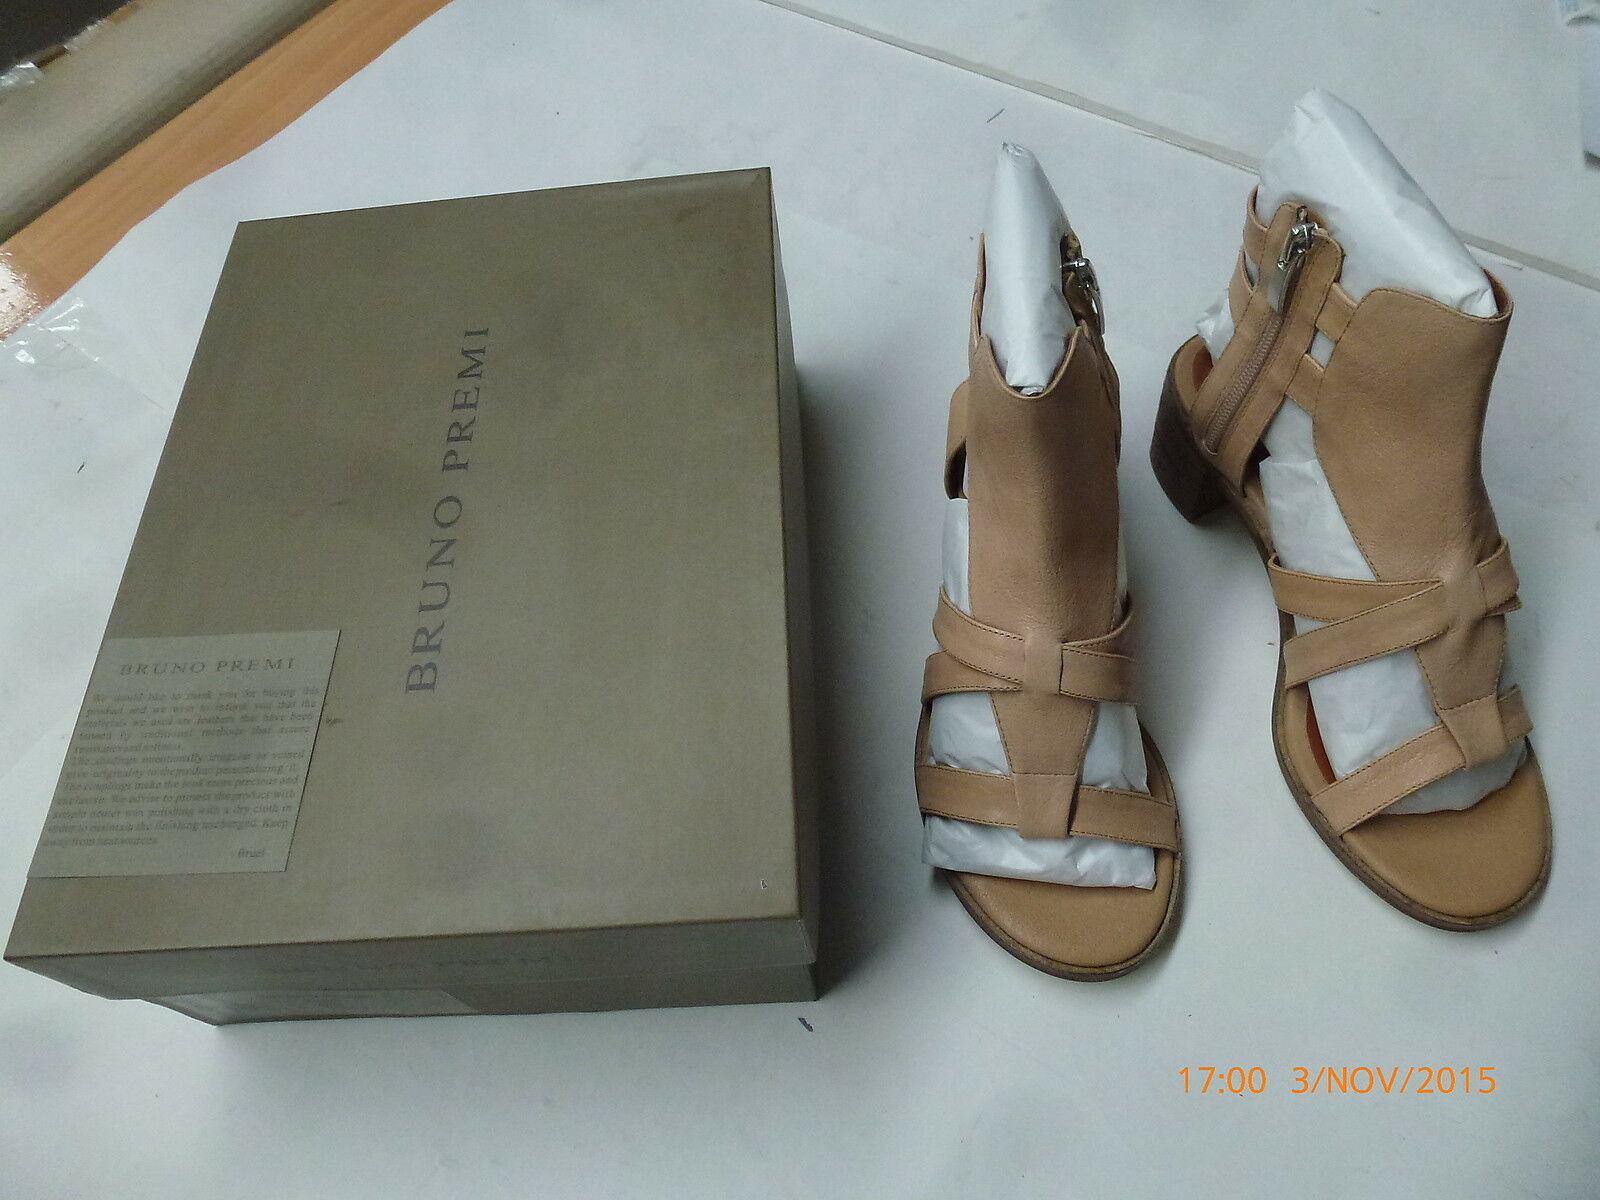 Bruno Premi X4203X Texas Naturale Womens 100% Leather Strap shoes Size 7 38 New